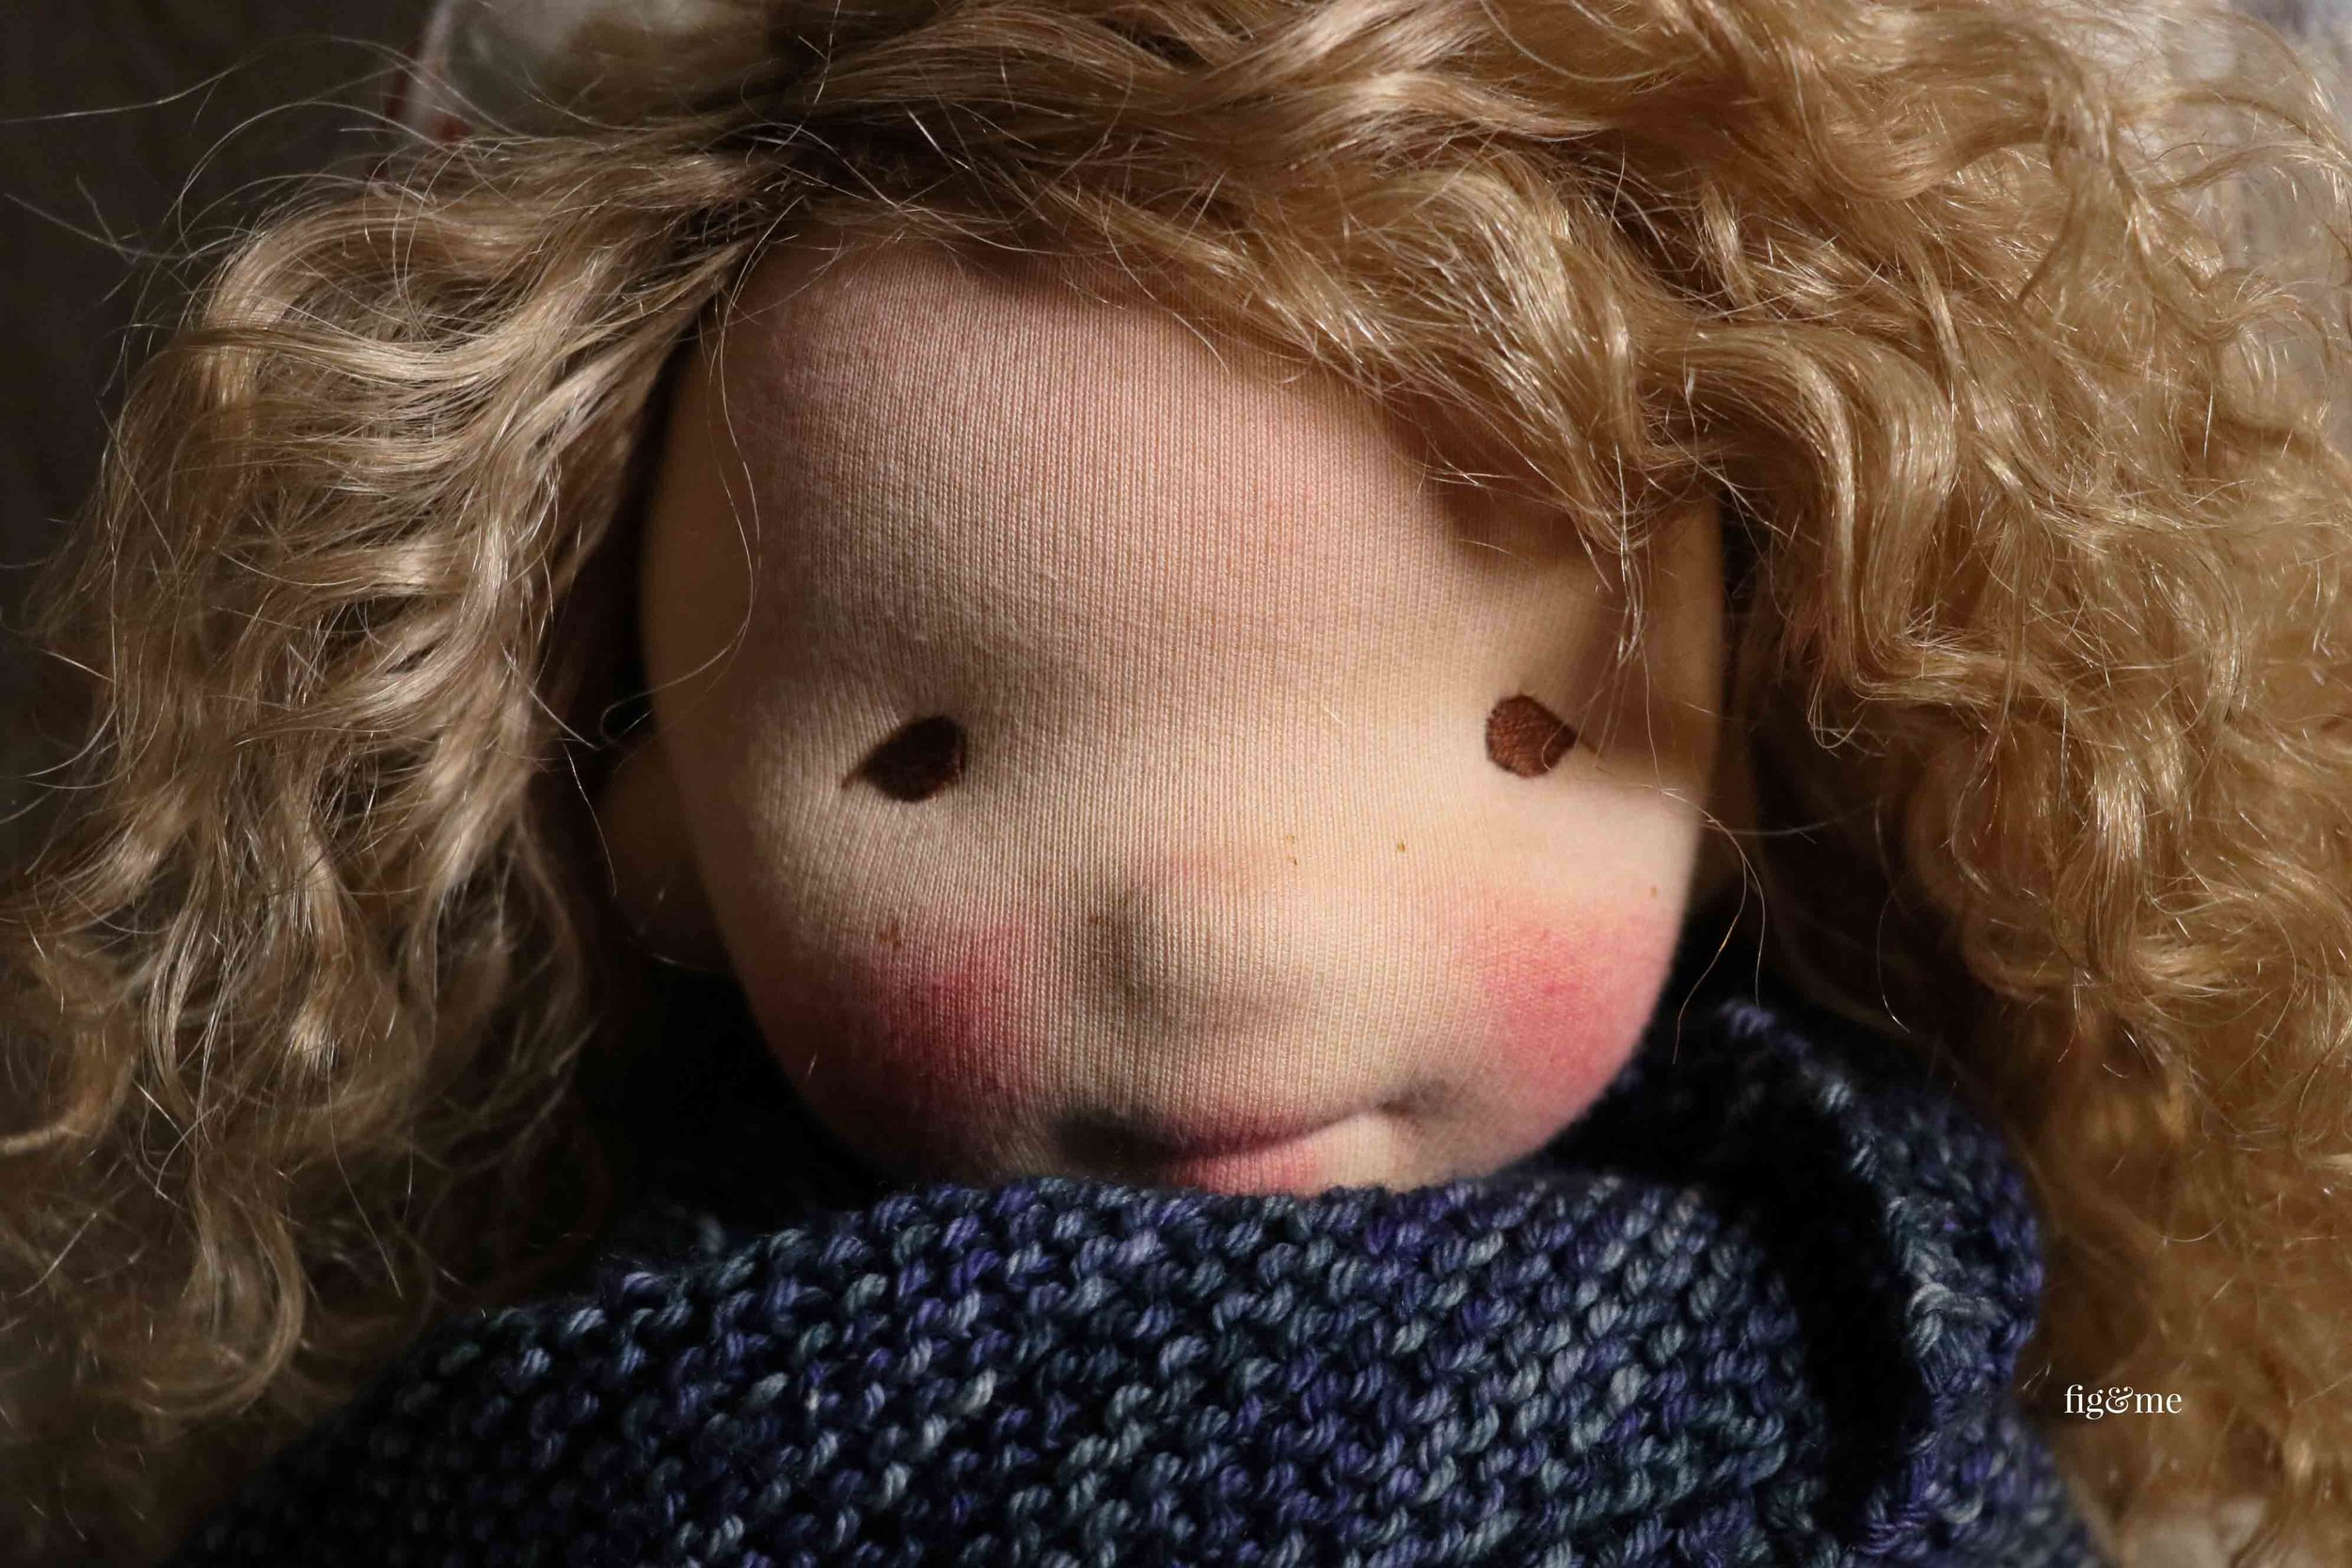 Thora is a natural fiber art doll created by Fig and Me. #freckleface #clothdoll